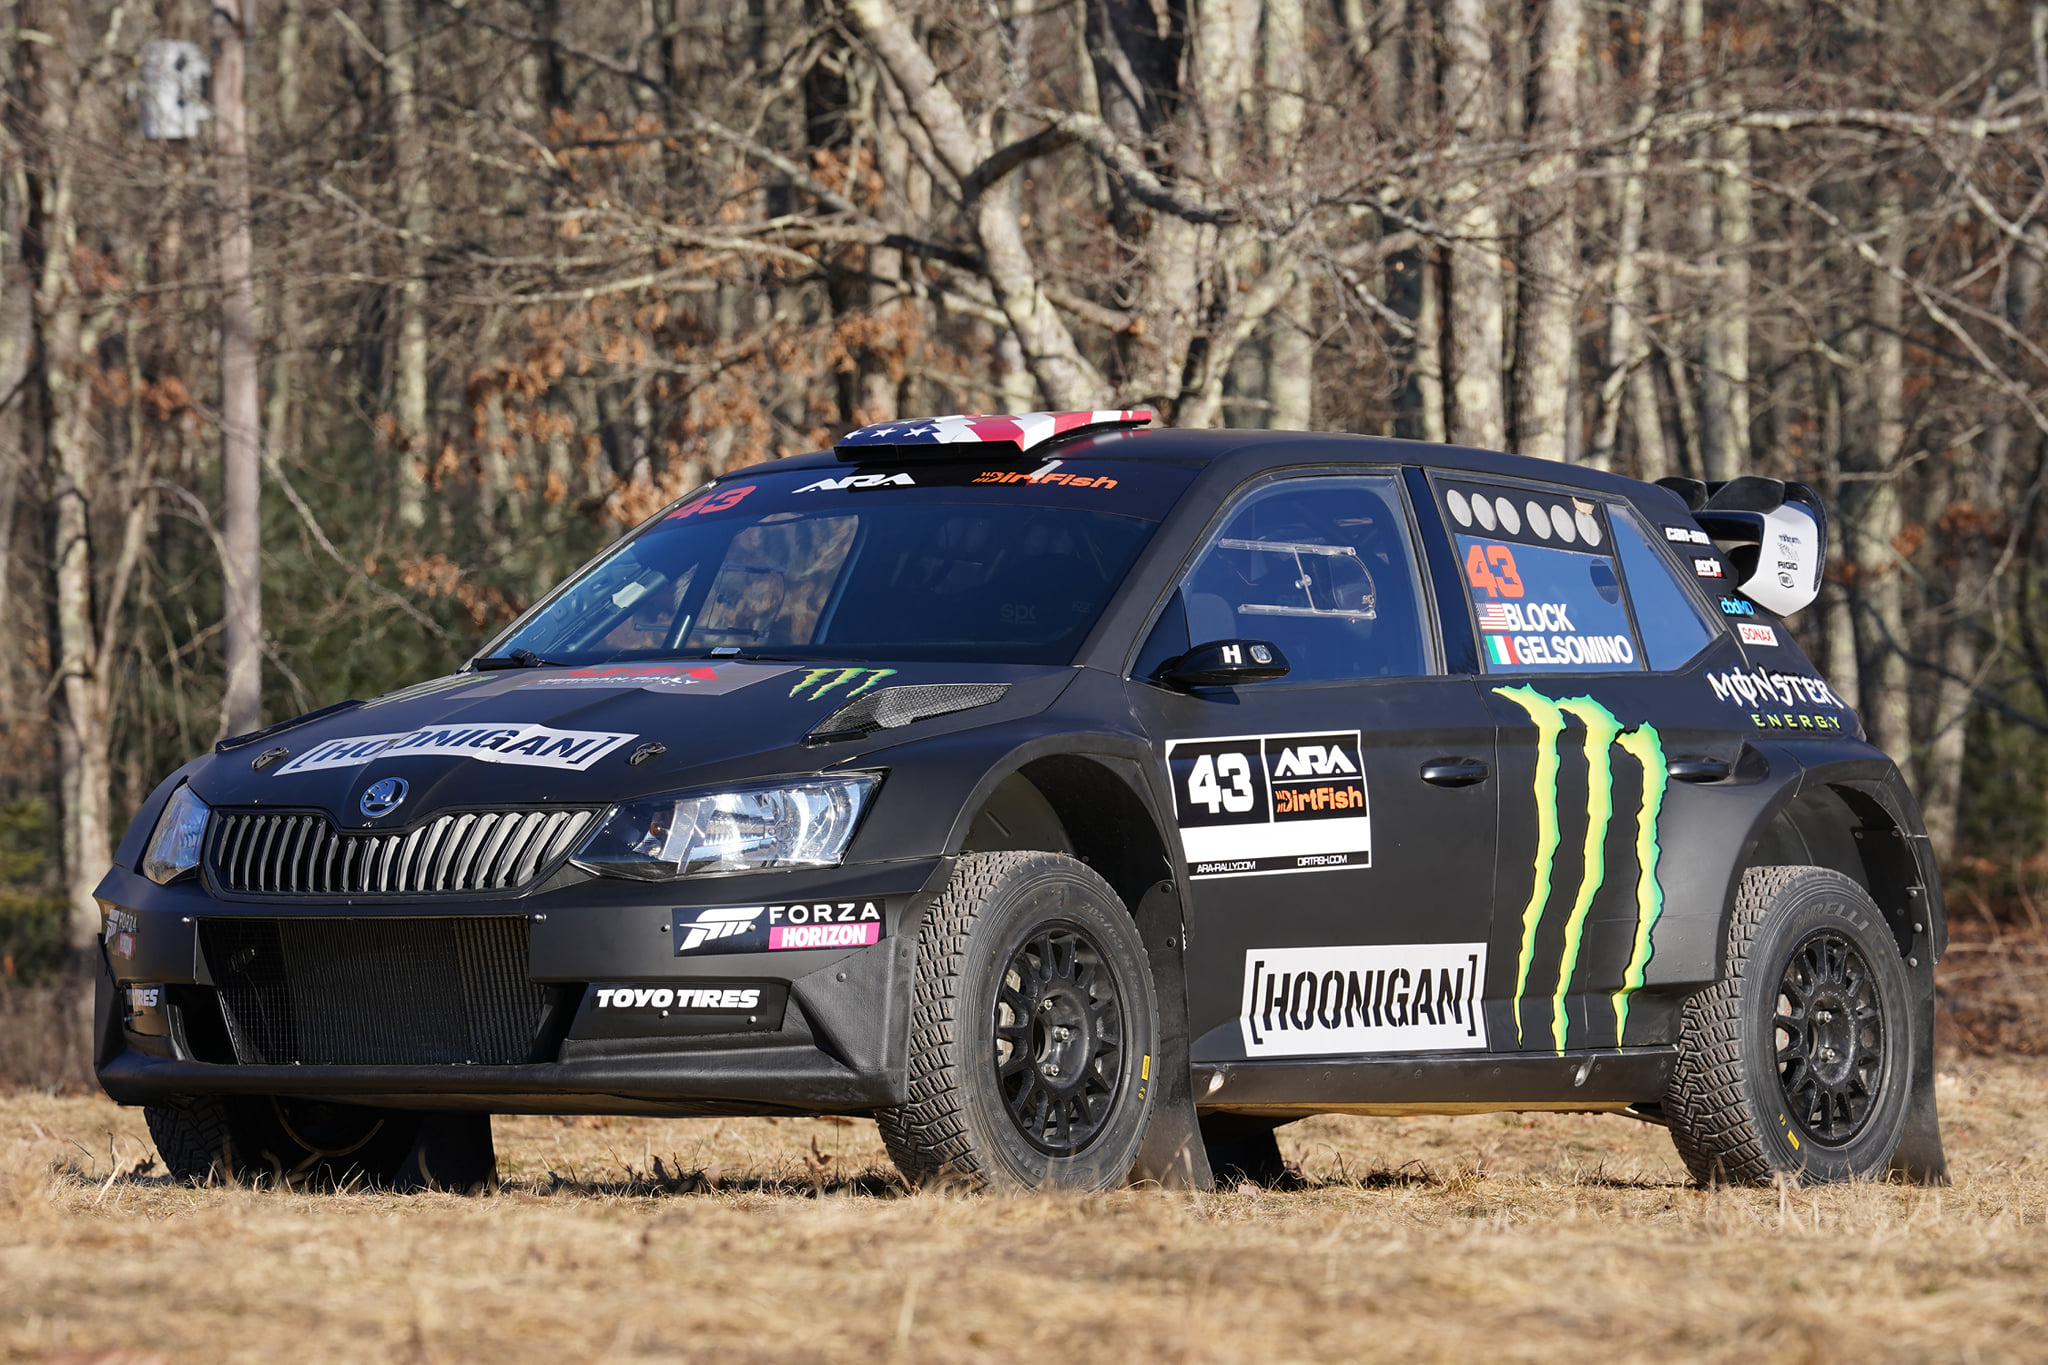 ken-block-shows-off-his-new-skoda-fabia-